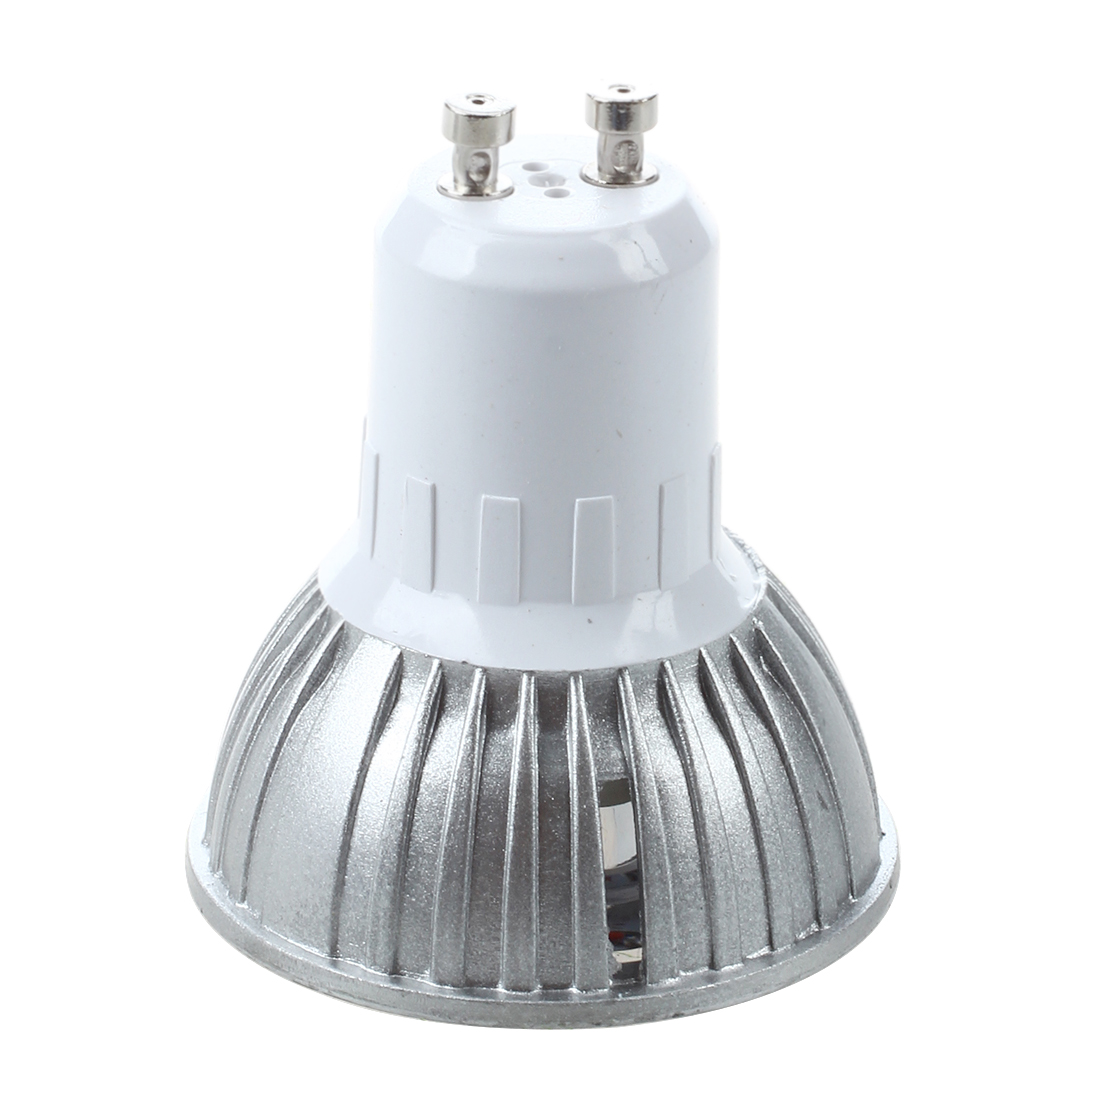 Gu10 C Gu10 Lamp Light Bulb Has 3 Led Warm White 3w 5w 12v C2t7